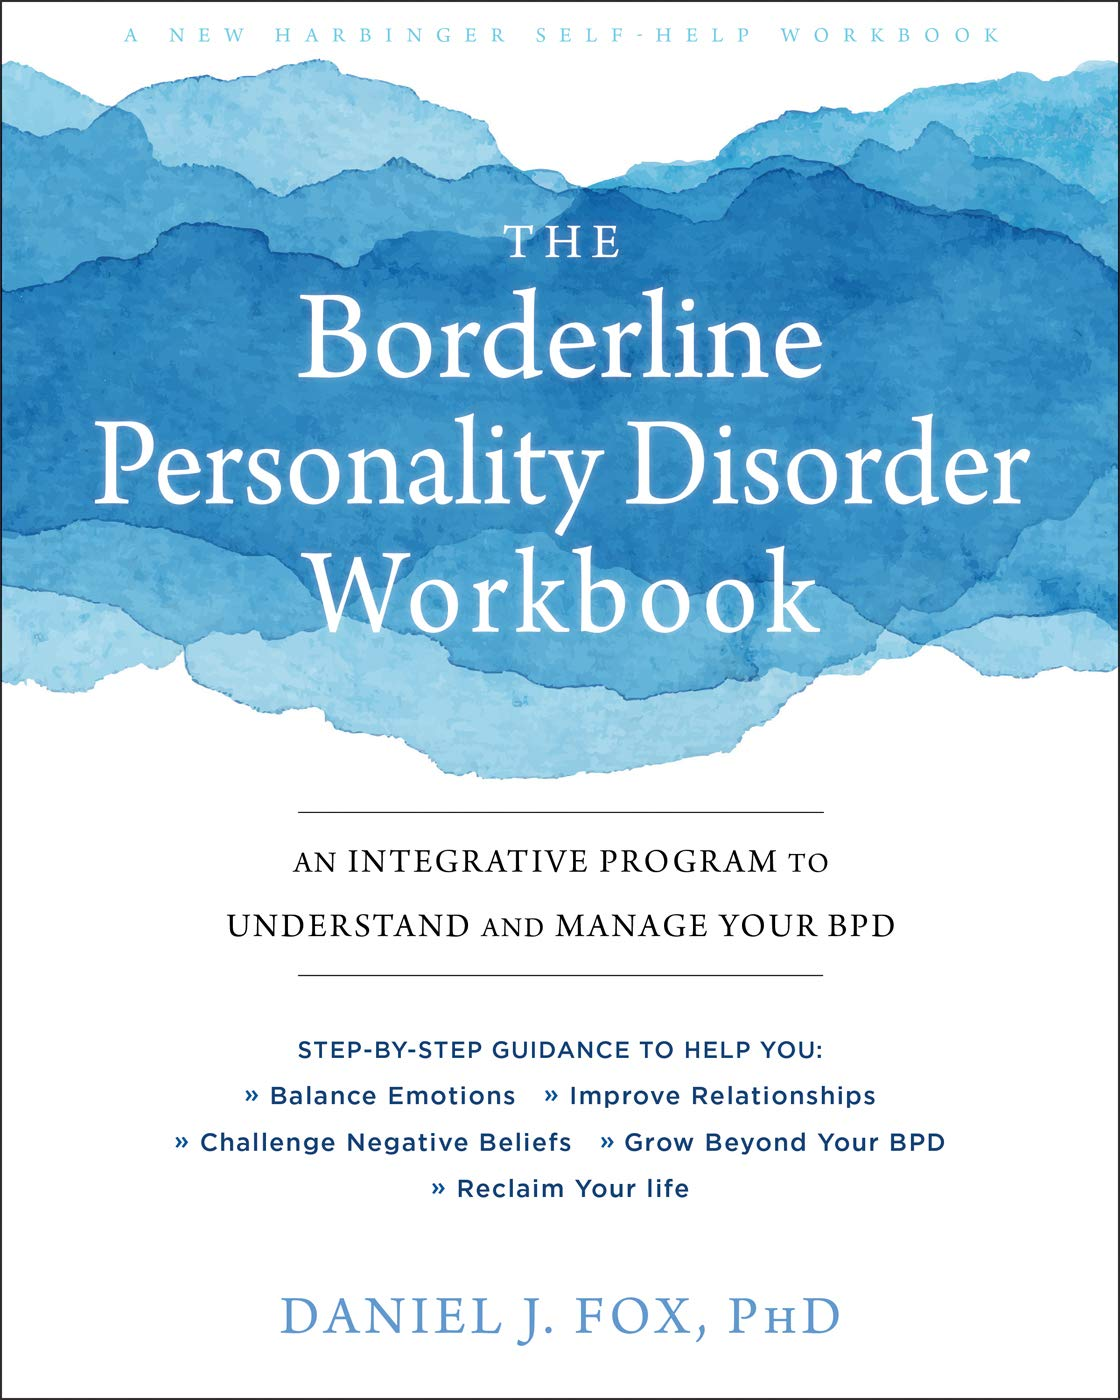 The Borderline Personality Disorder Workbook: An Integrative